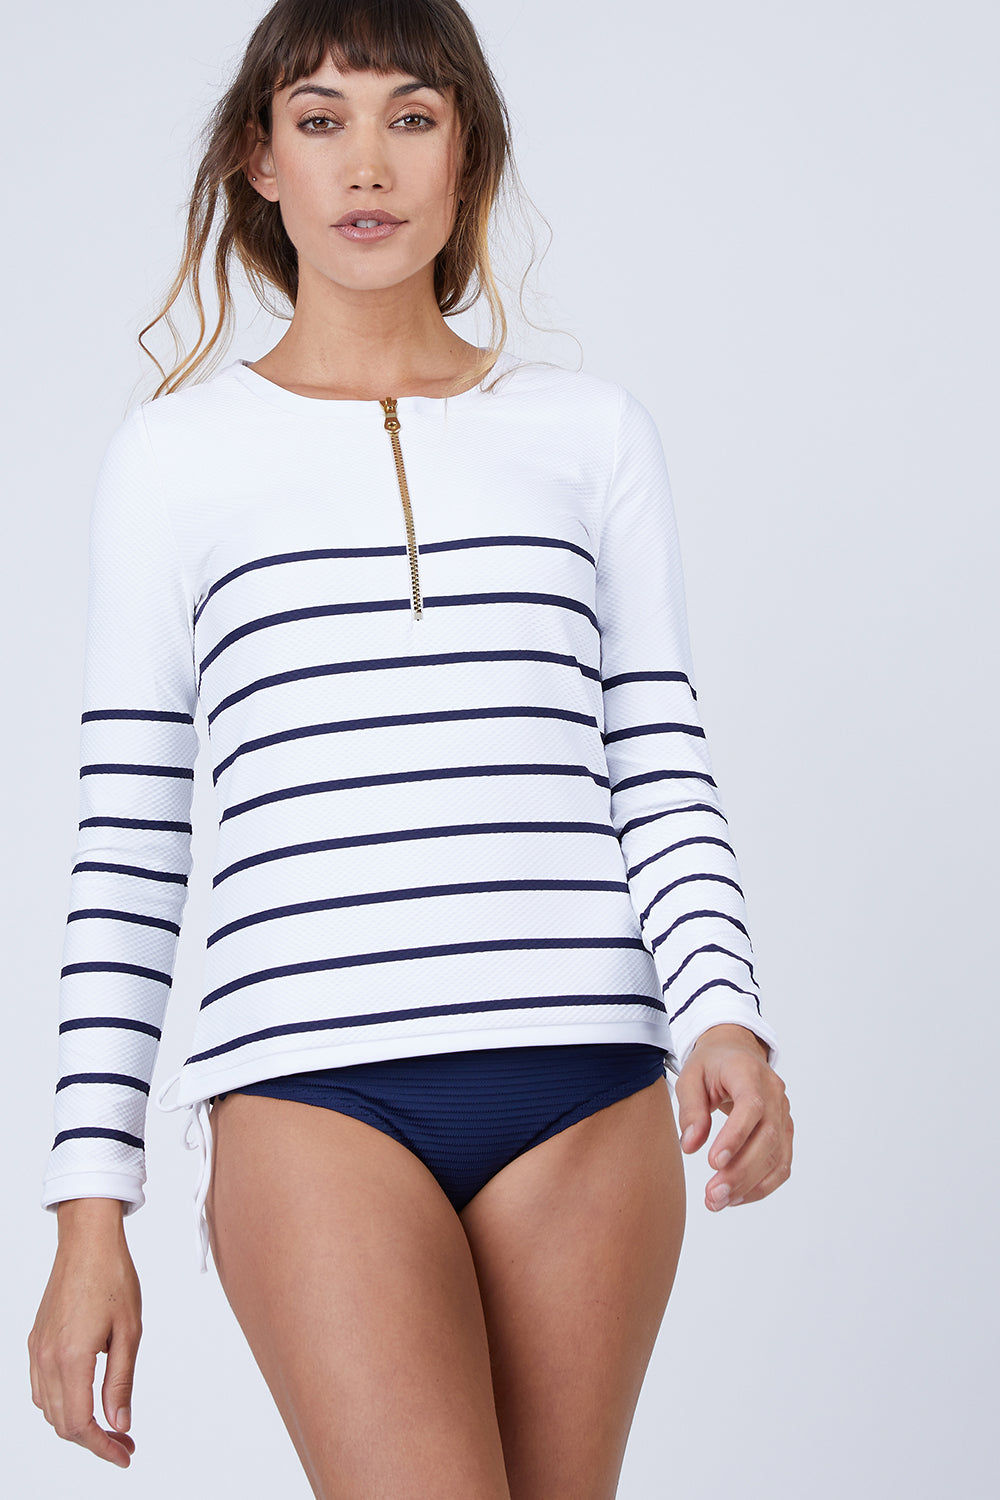 HEIDI KLEIN Zipper Front Long Sleeve Rashguard - Nautical Stripe Print Bikini Top | Nautical Stripe Print | Heidi Klein Rash Vest - Nautical Stripe. Features:  Rash vests in block colors and slimline stripes swimsuits Impeccably cut for a flattering fit from technically advanced textured fabric Finished with beautifully weighted hardware Composition: 85% Polyamide 15% Elastane Front View